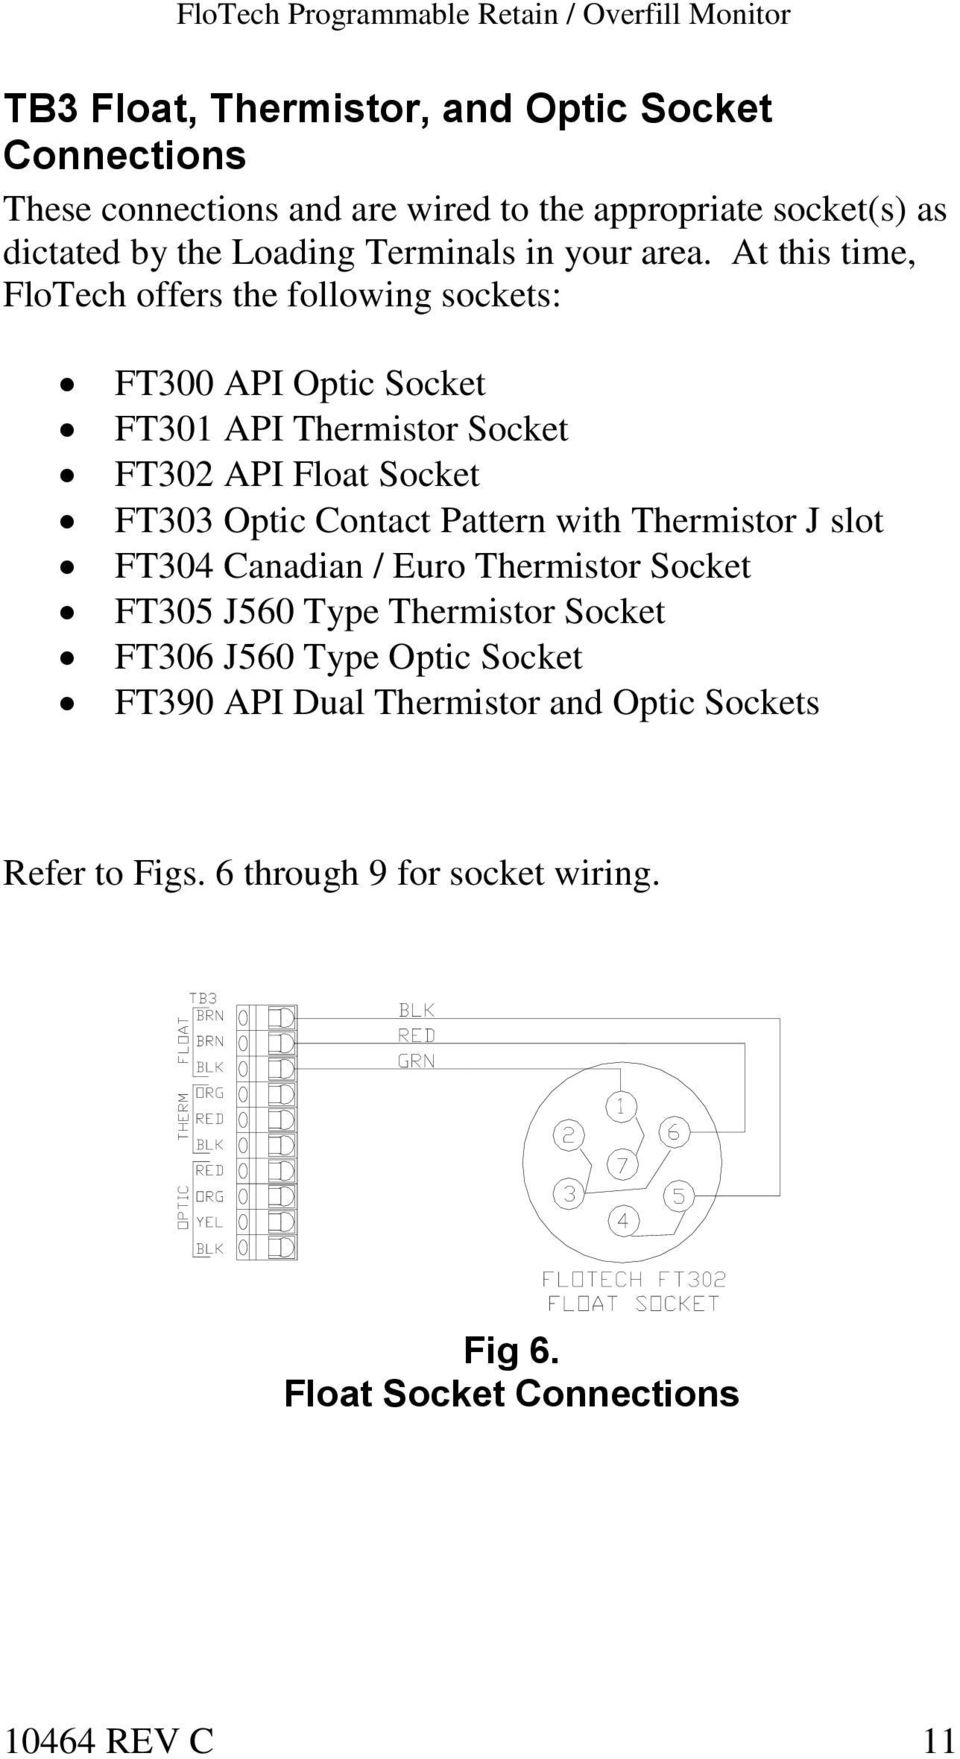 At this time, FloTech offers the following sockets: FT300 API Optic Socket FT301 API Thermistor Socket FT302 API Float Socket FT303 Optic Contact Pattern